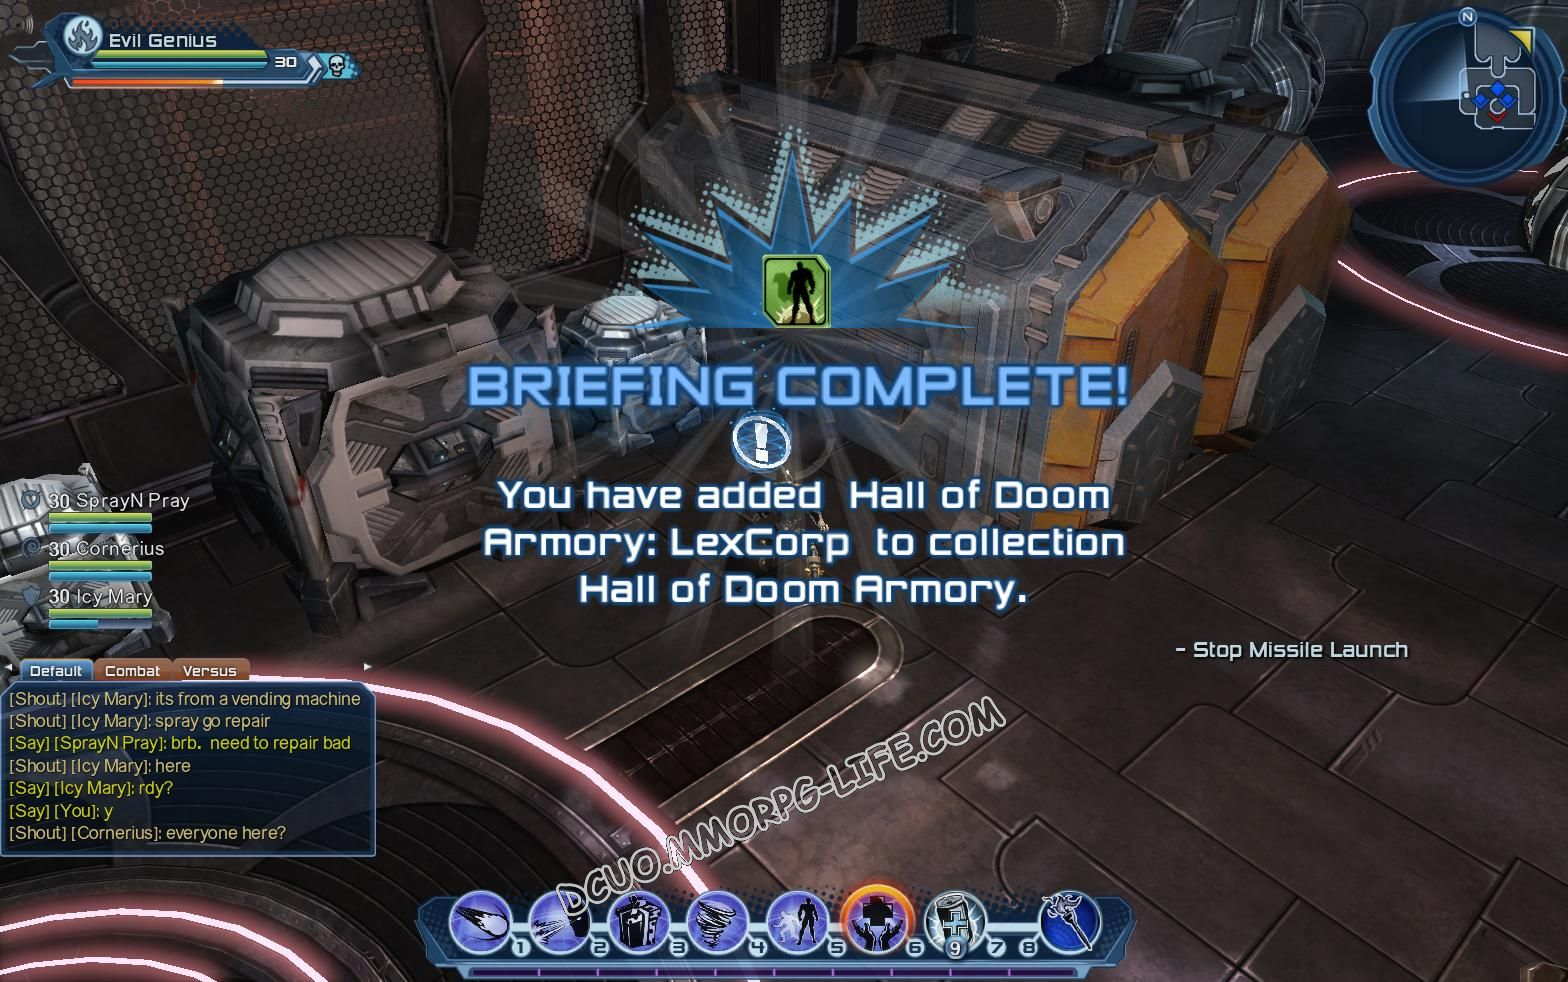 Briefing: Hall of Doom Armory, step 4 Hall of Doom Armory: LexCorp  image 1960 middle size